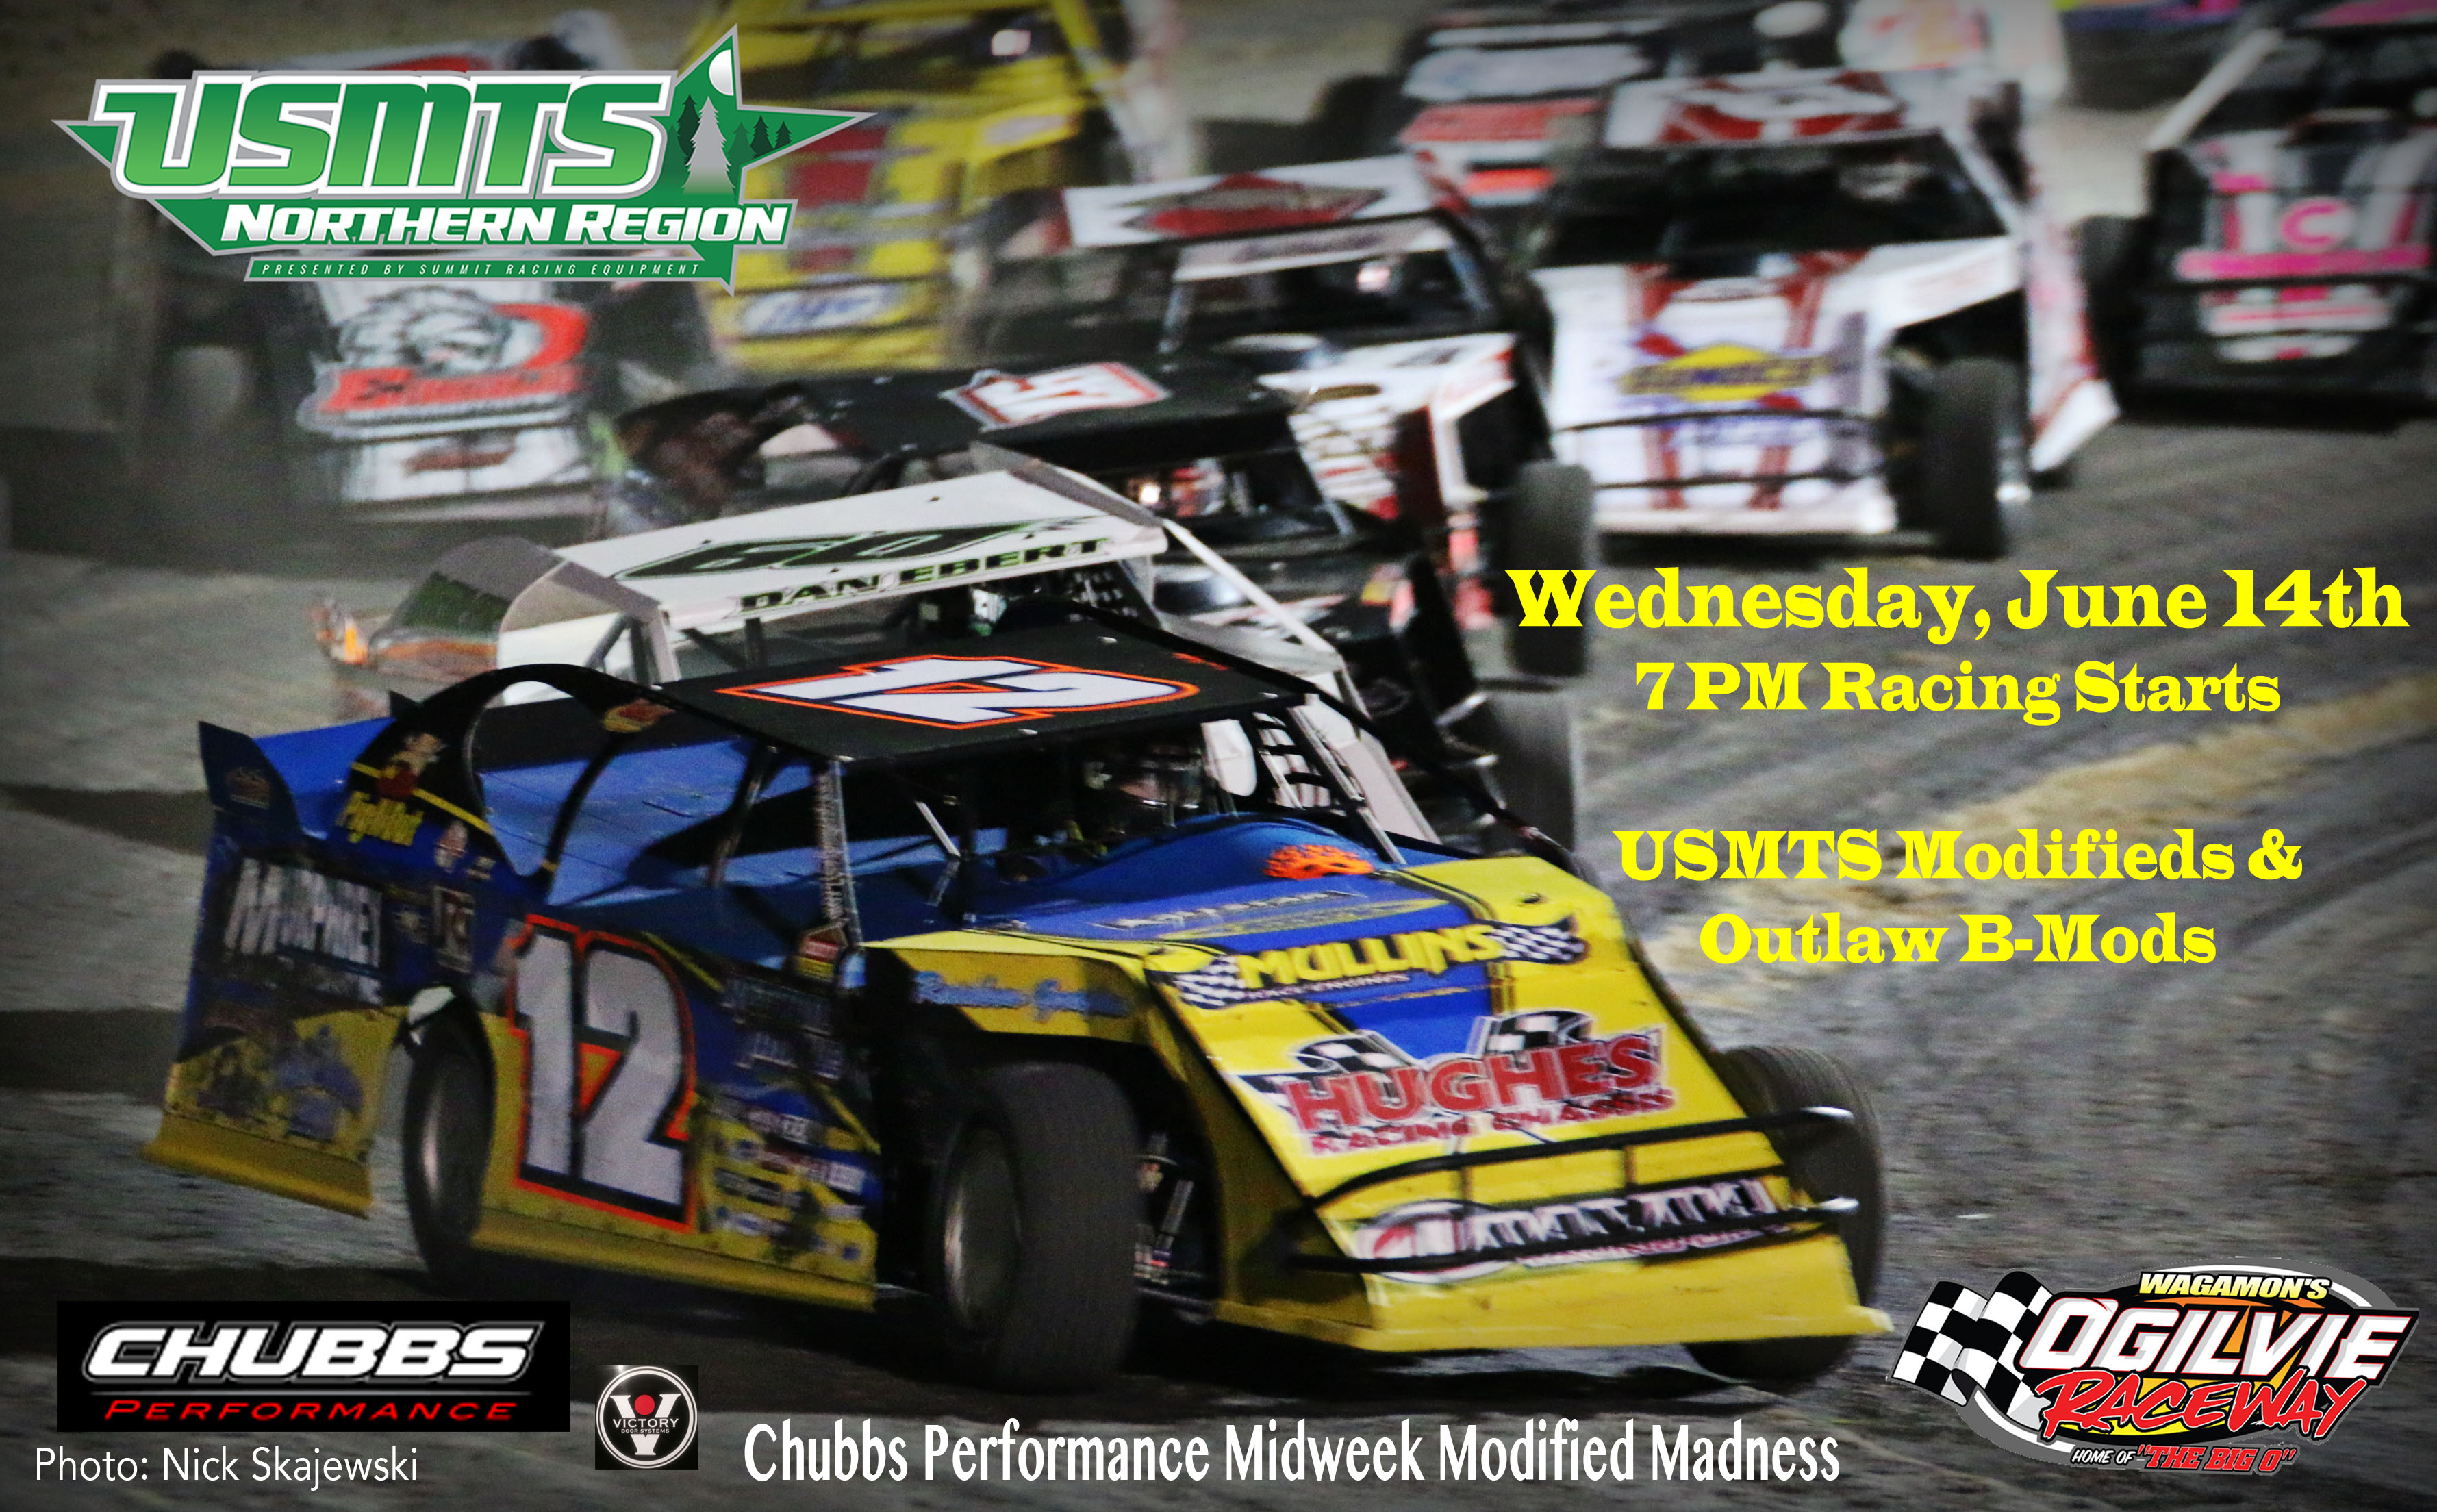 Midweek Modified Madness – WEDNESDAY, JUNE 14th – USMTS and Unsanctioned B-Mods